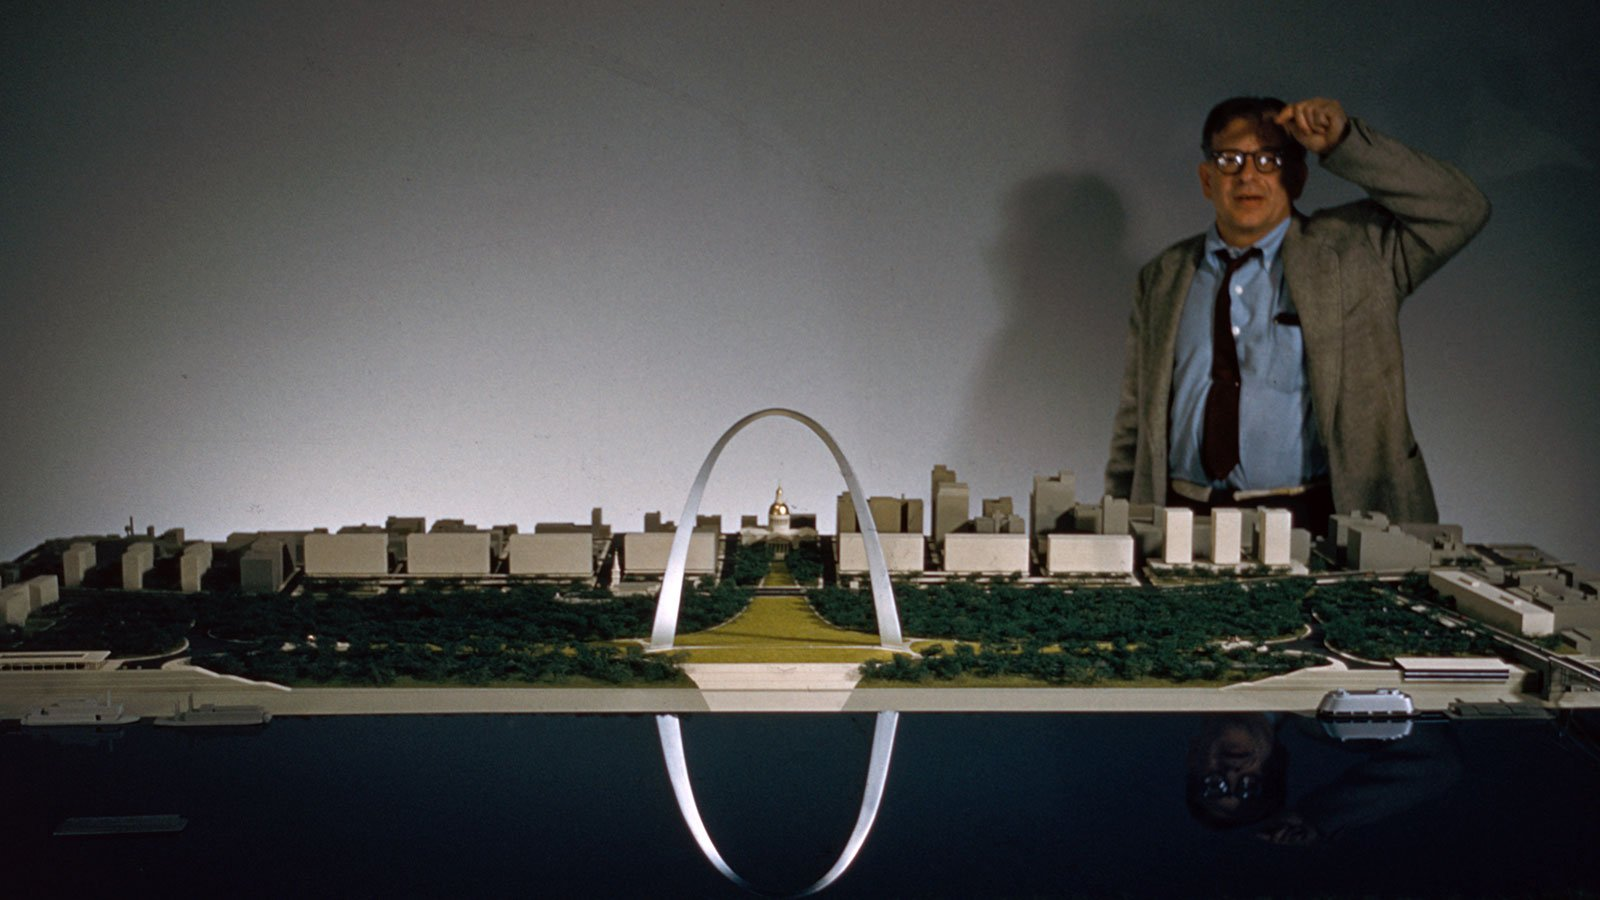 Eero Saarinen stands behind a model of the Saint Louis Gateway Arch in 1968